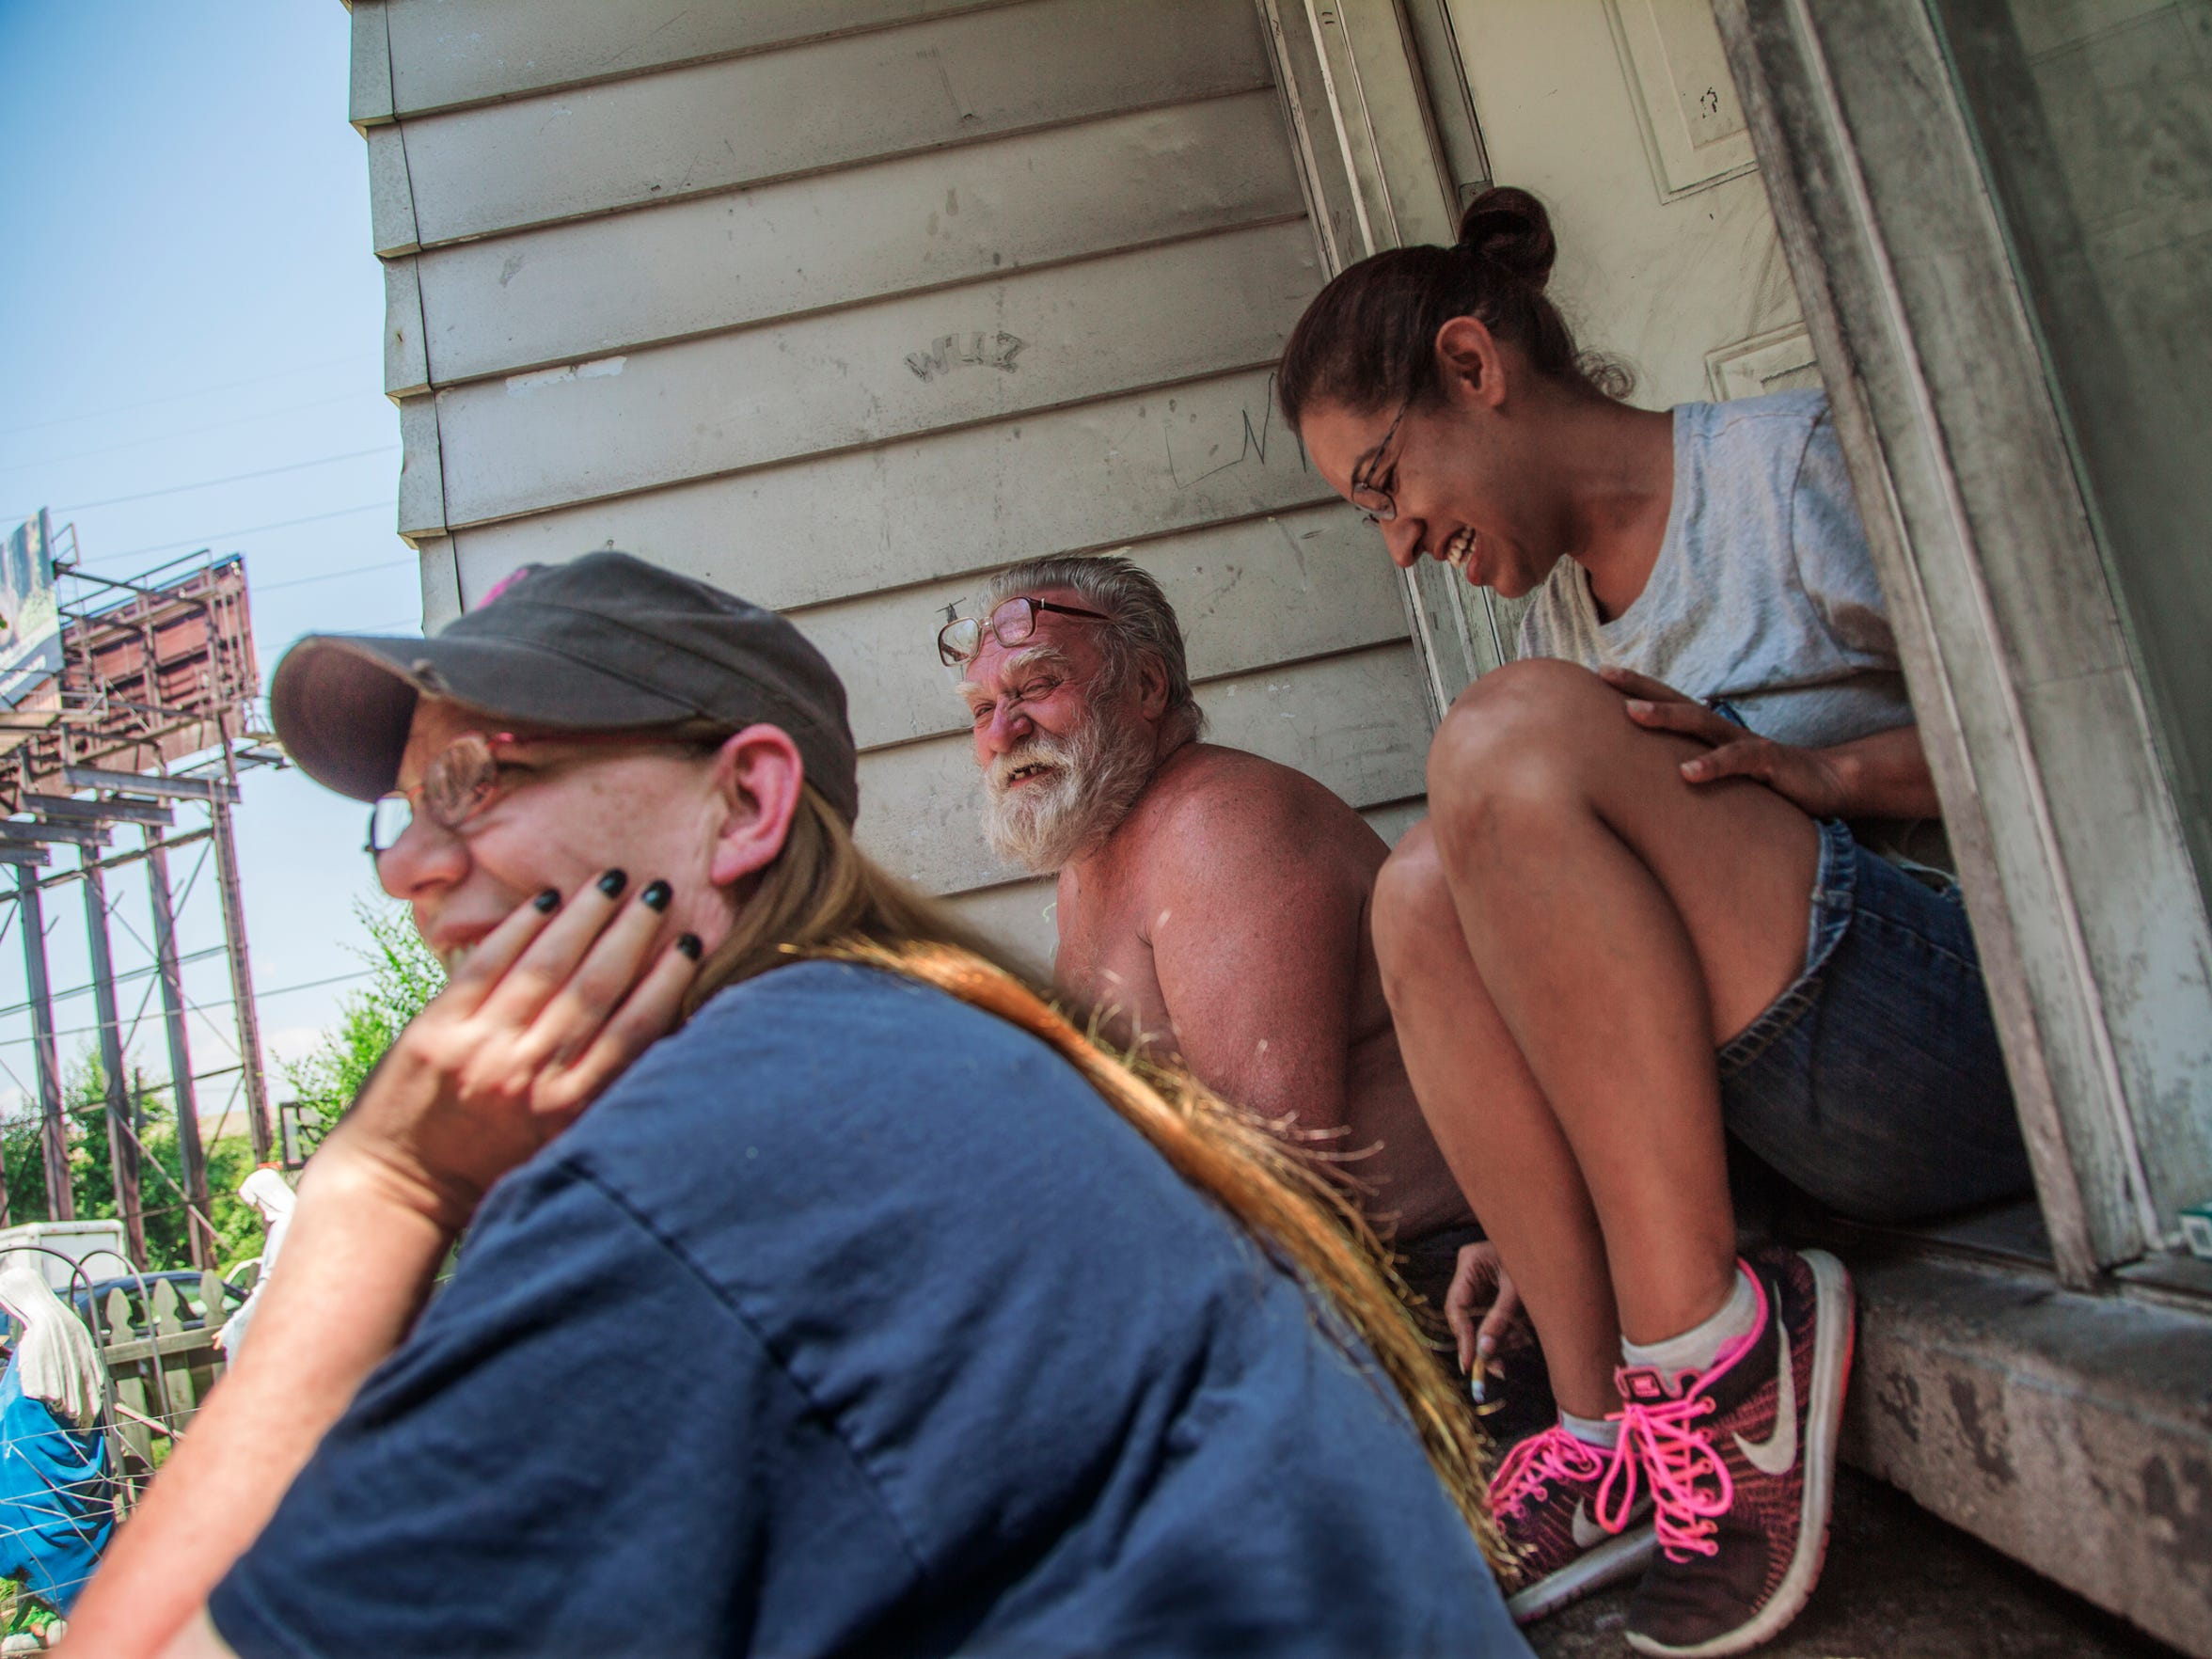 """Your neighbors become your family,"" said Lisa Roland, right, about her neighborhood and the city's offer to move Delray residents to a new house elsewhere in the city. ""They watch out for you, they watch out for your kids, they watch out for your house, your cars. We take care of one another. You don't find that every time in every neighborhood."" She was sitting with family friend Kim Libra, 52, and Mike Donovan, 73, on the porch of the Donovan family's house on July 18, 2017."